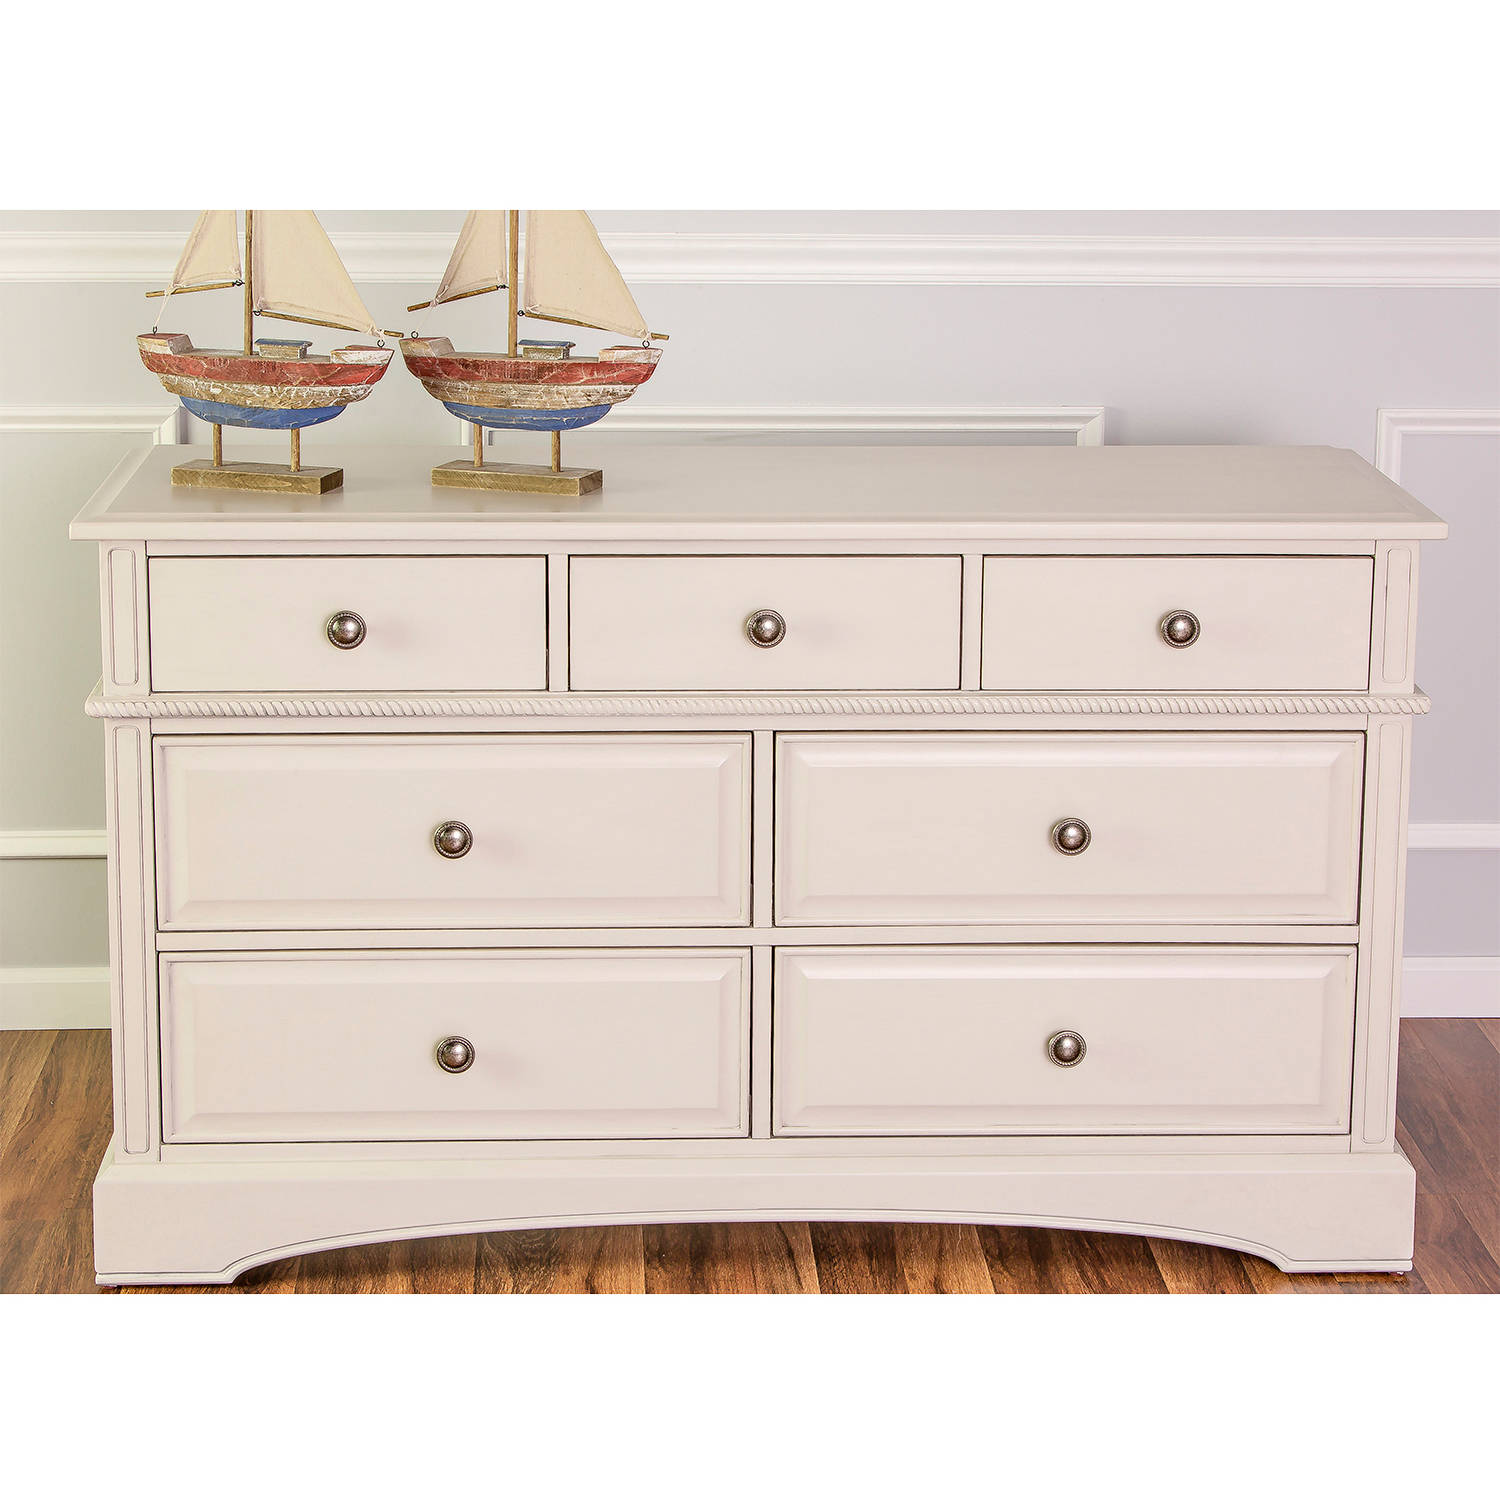 Mia Moda Double Drawers Dresser, Choose Your Finish